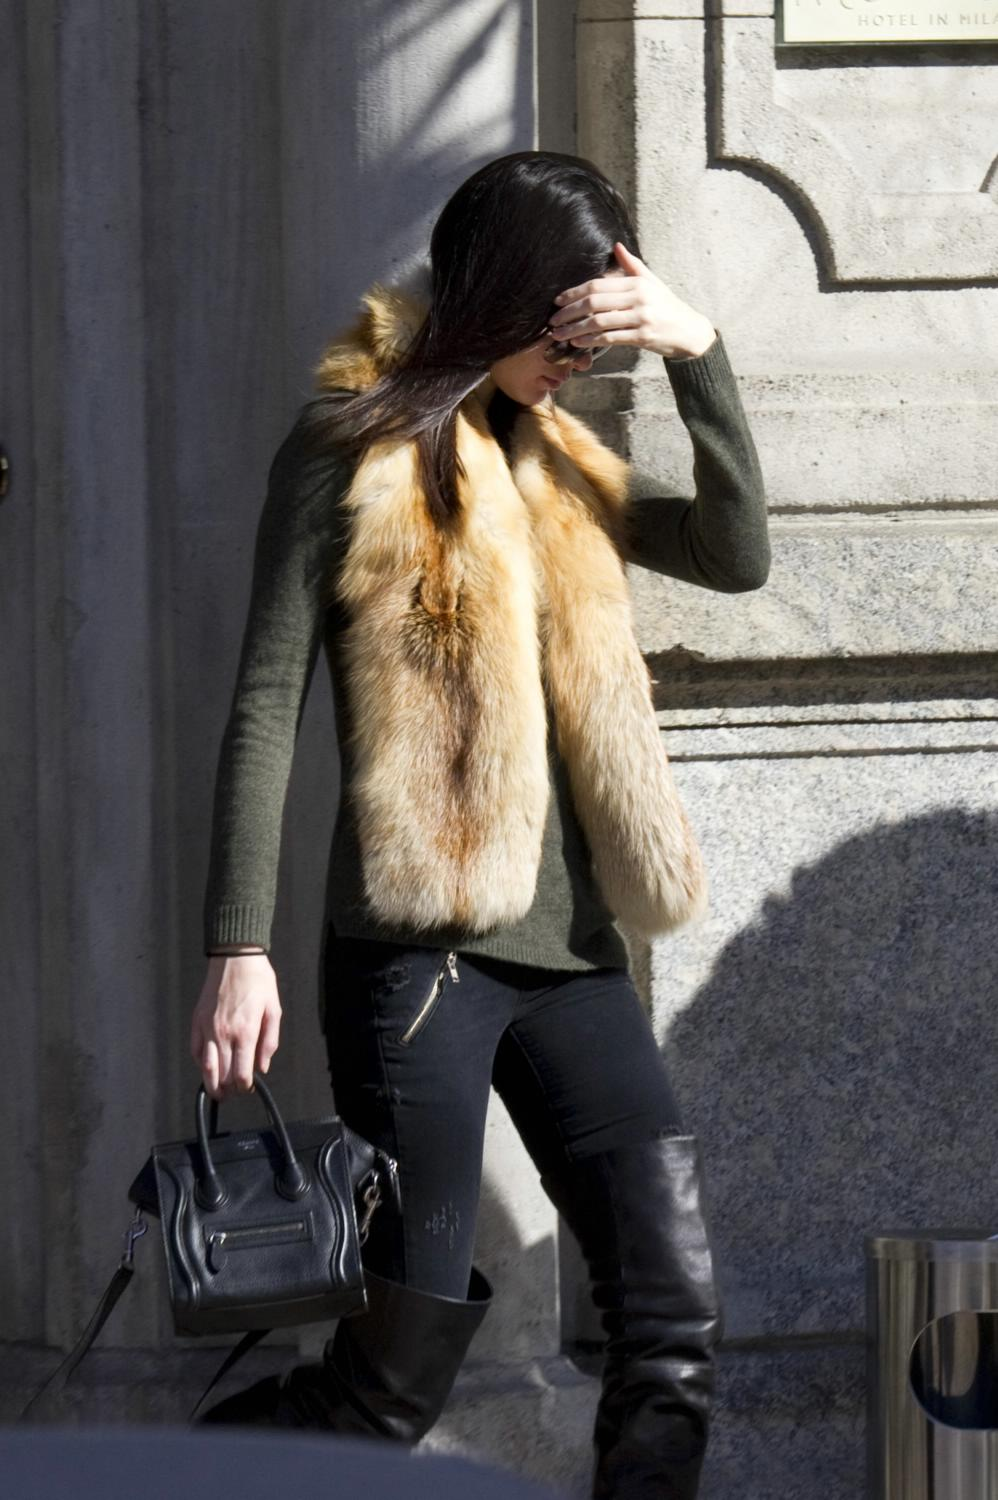 Kendall Jenner is spotted shopping in Milan